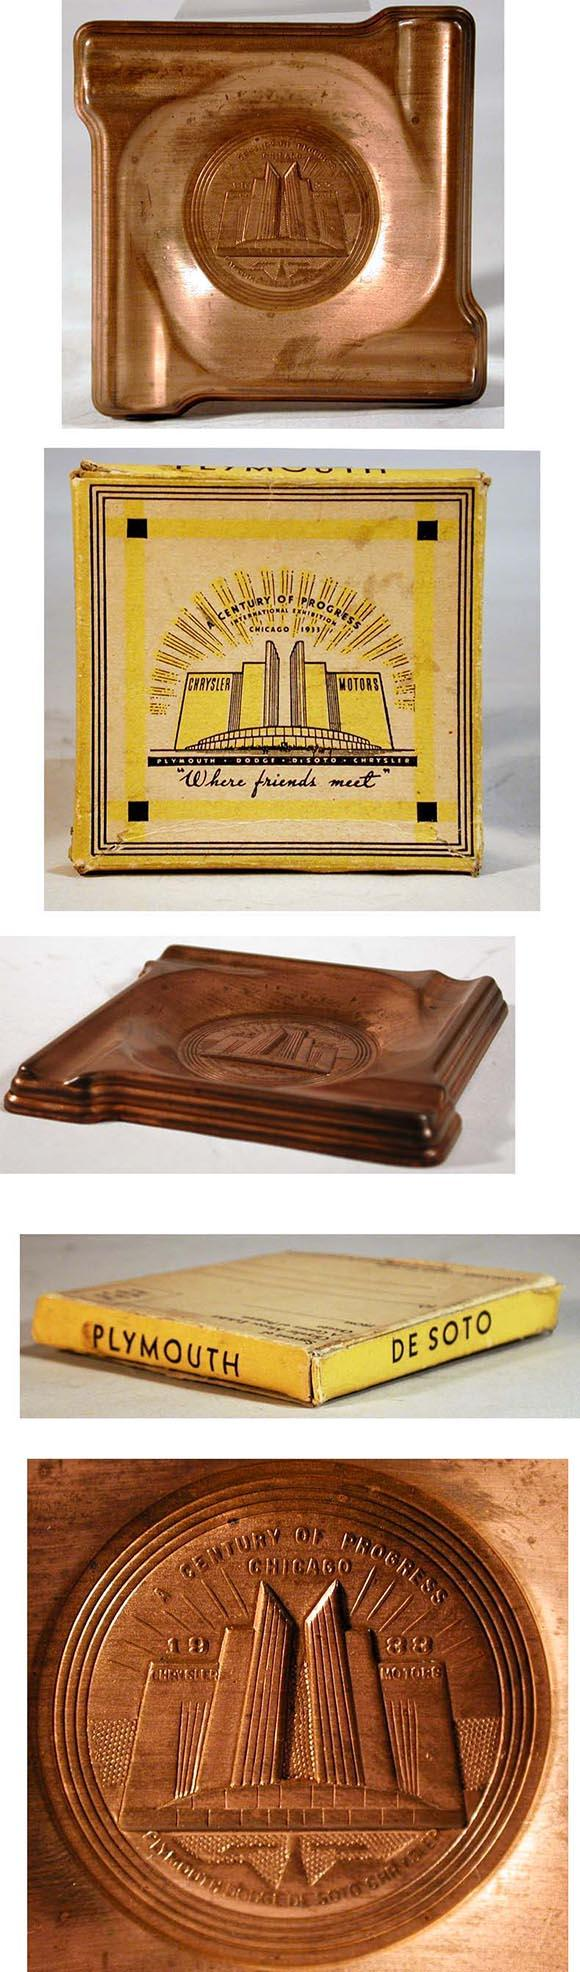 1933 Chicago World Fair Chrysler Copper Ash Tray in Original Box